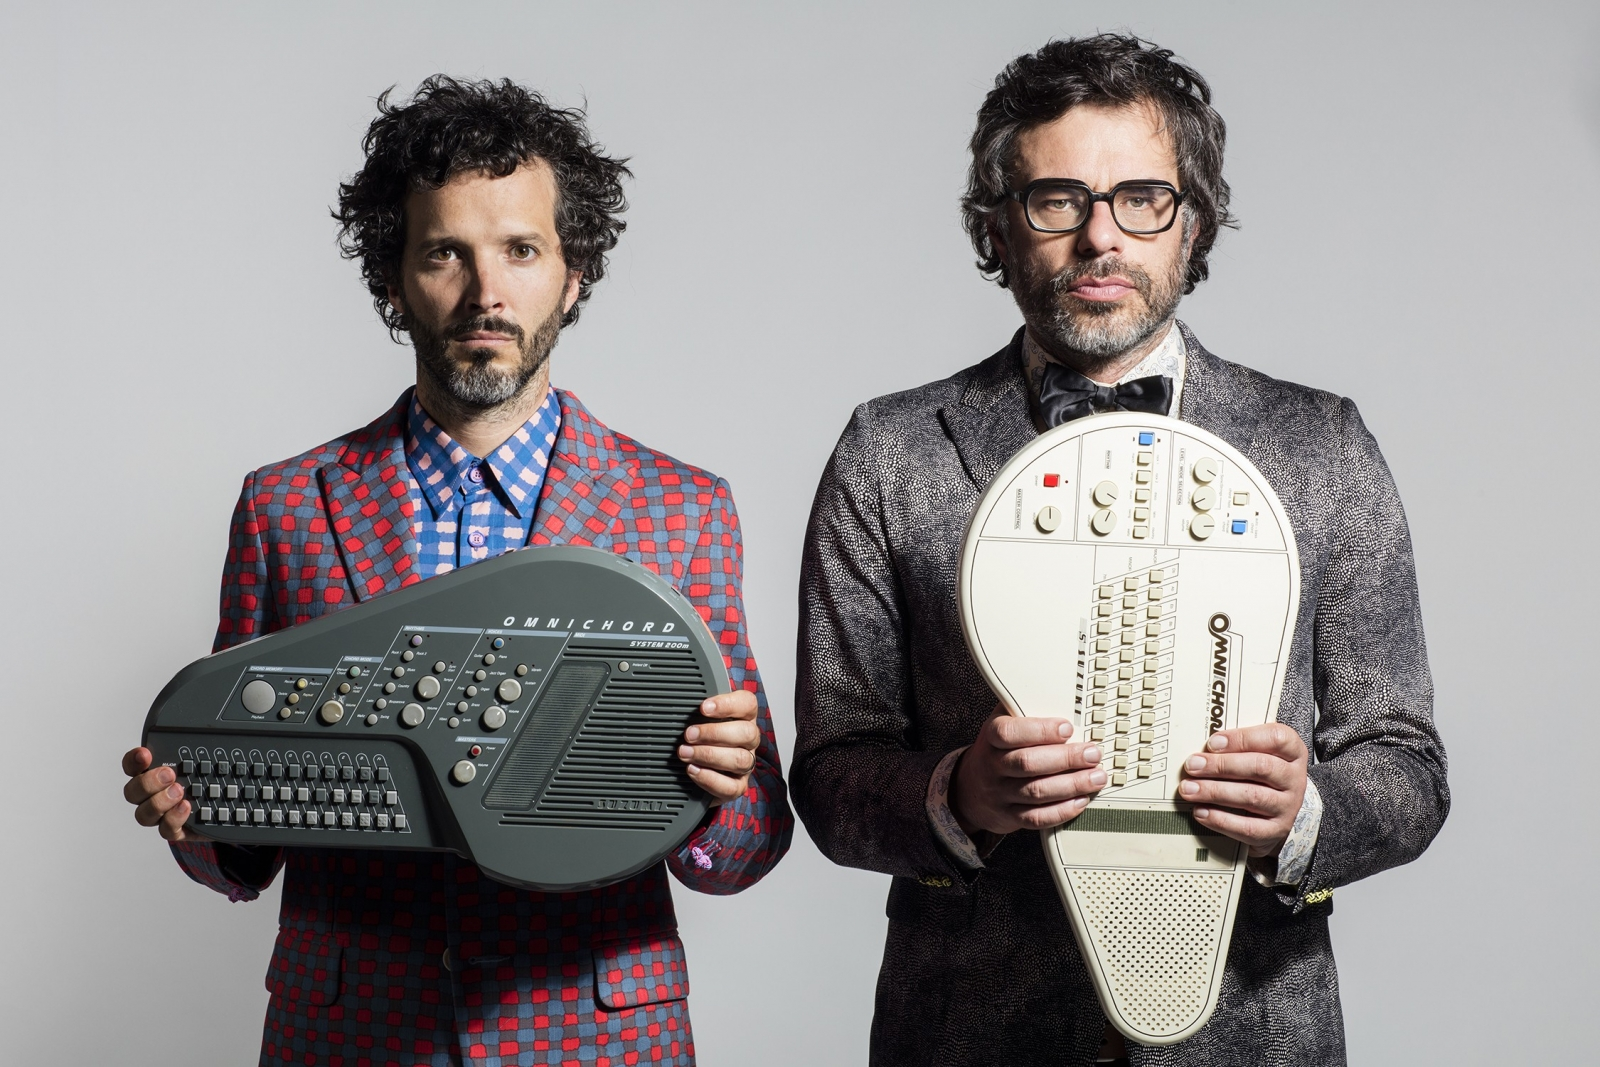 Jemaine Clement claims Flight of the Conchords will have 2018 HBO special